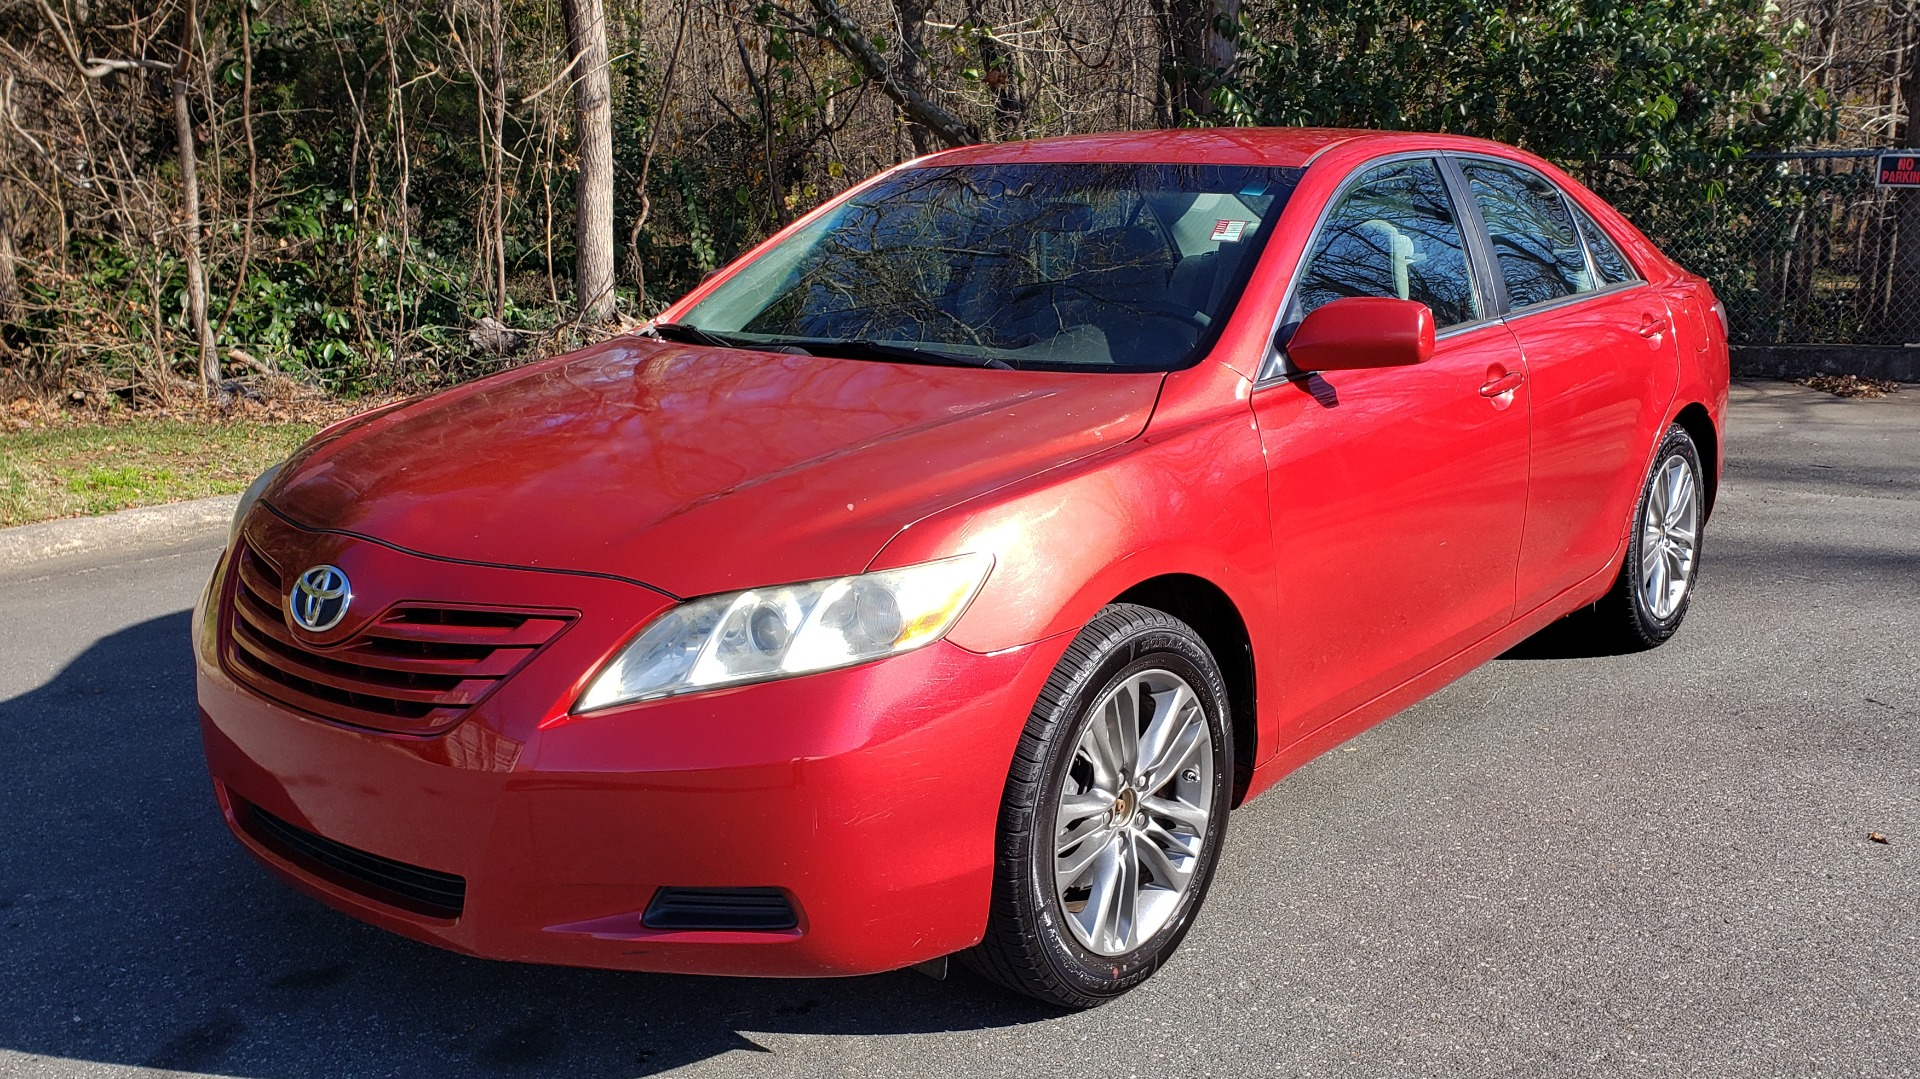 Used 2009 Toyota CAMRY LE / 2.4L SEDAN / FWD / 4-CYL / AUTO / CLOTH / CLEAN for sale $4,999 at Formula Imports in Charlotte NC 28227 1